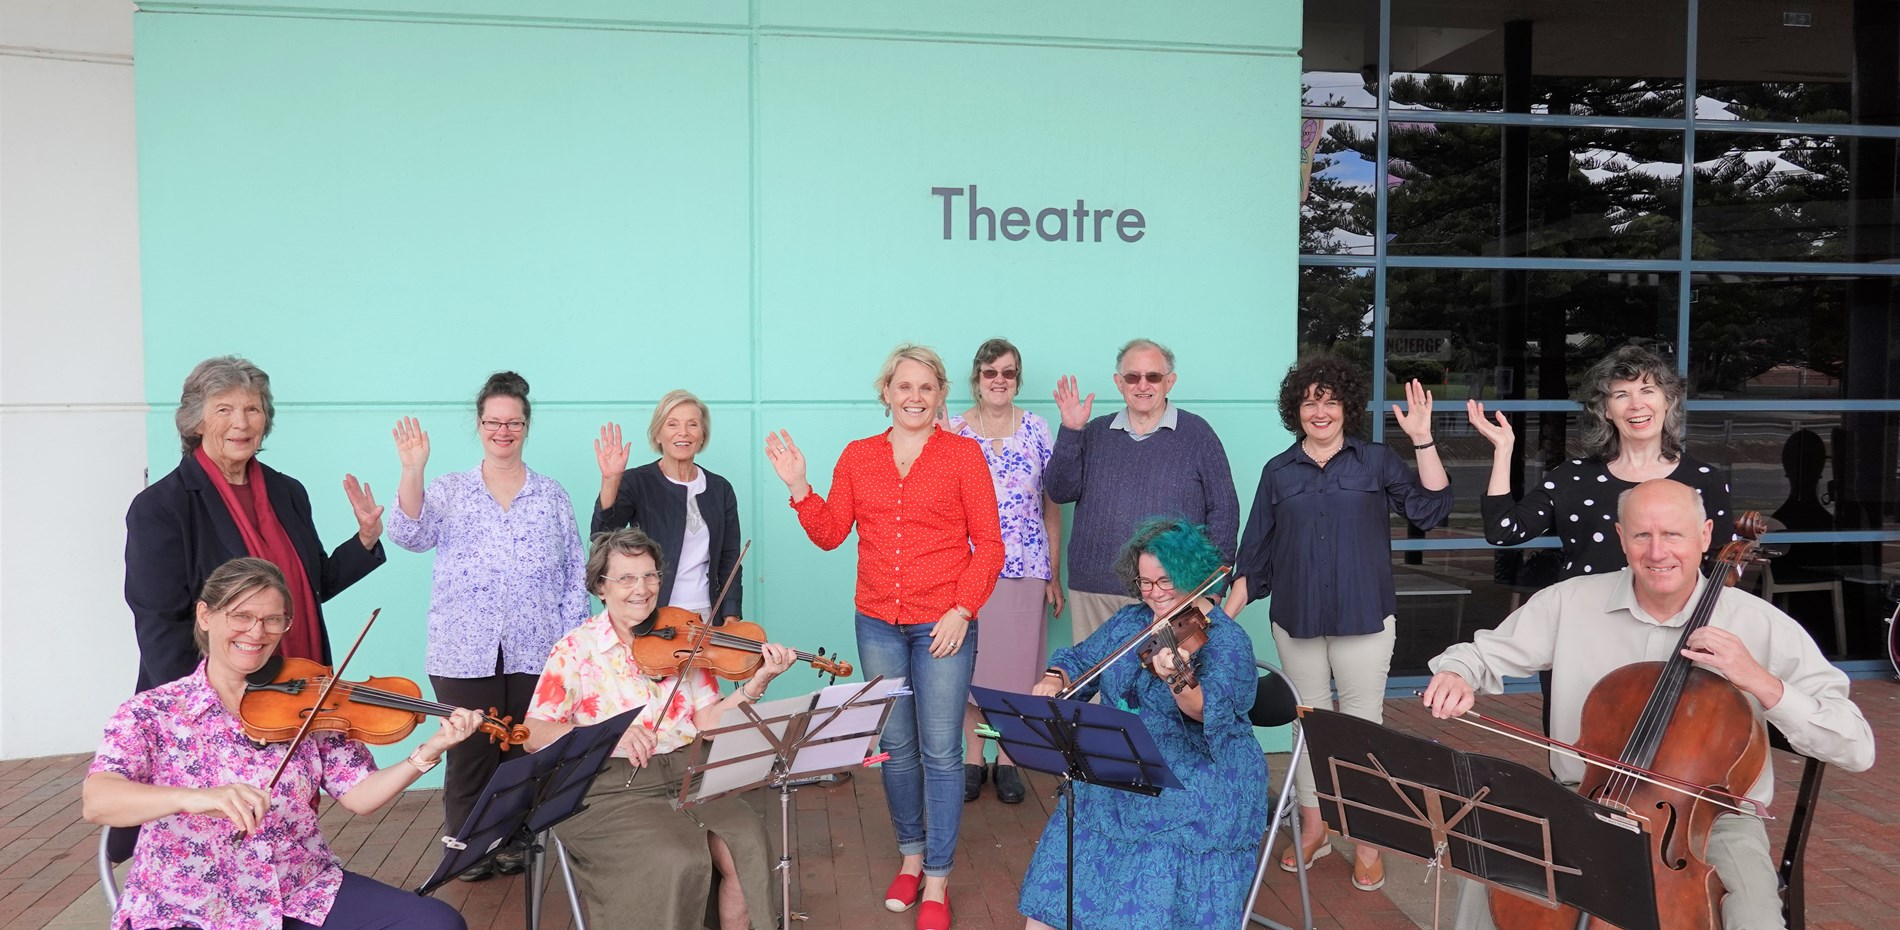 MEDIA RELEASE - FRANKSTON MUSIC SOCIETY GETS A BOOST - 14 APRIL 2021 Main Image